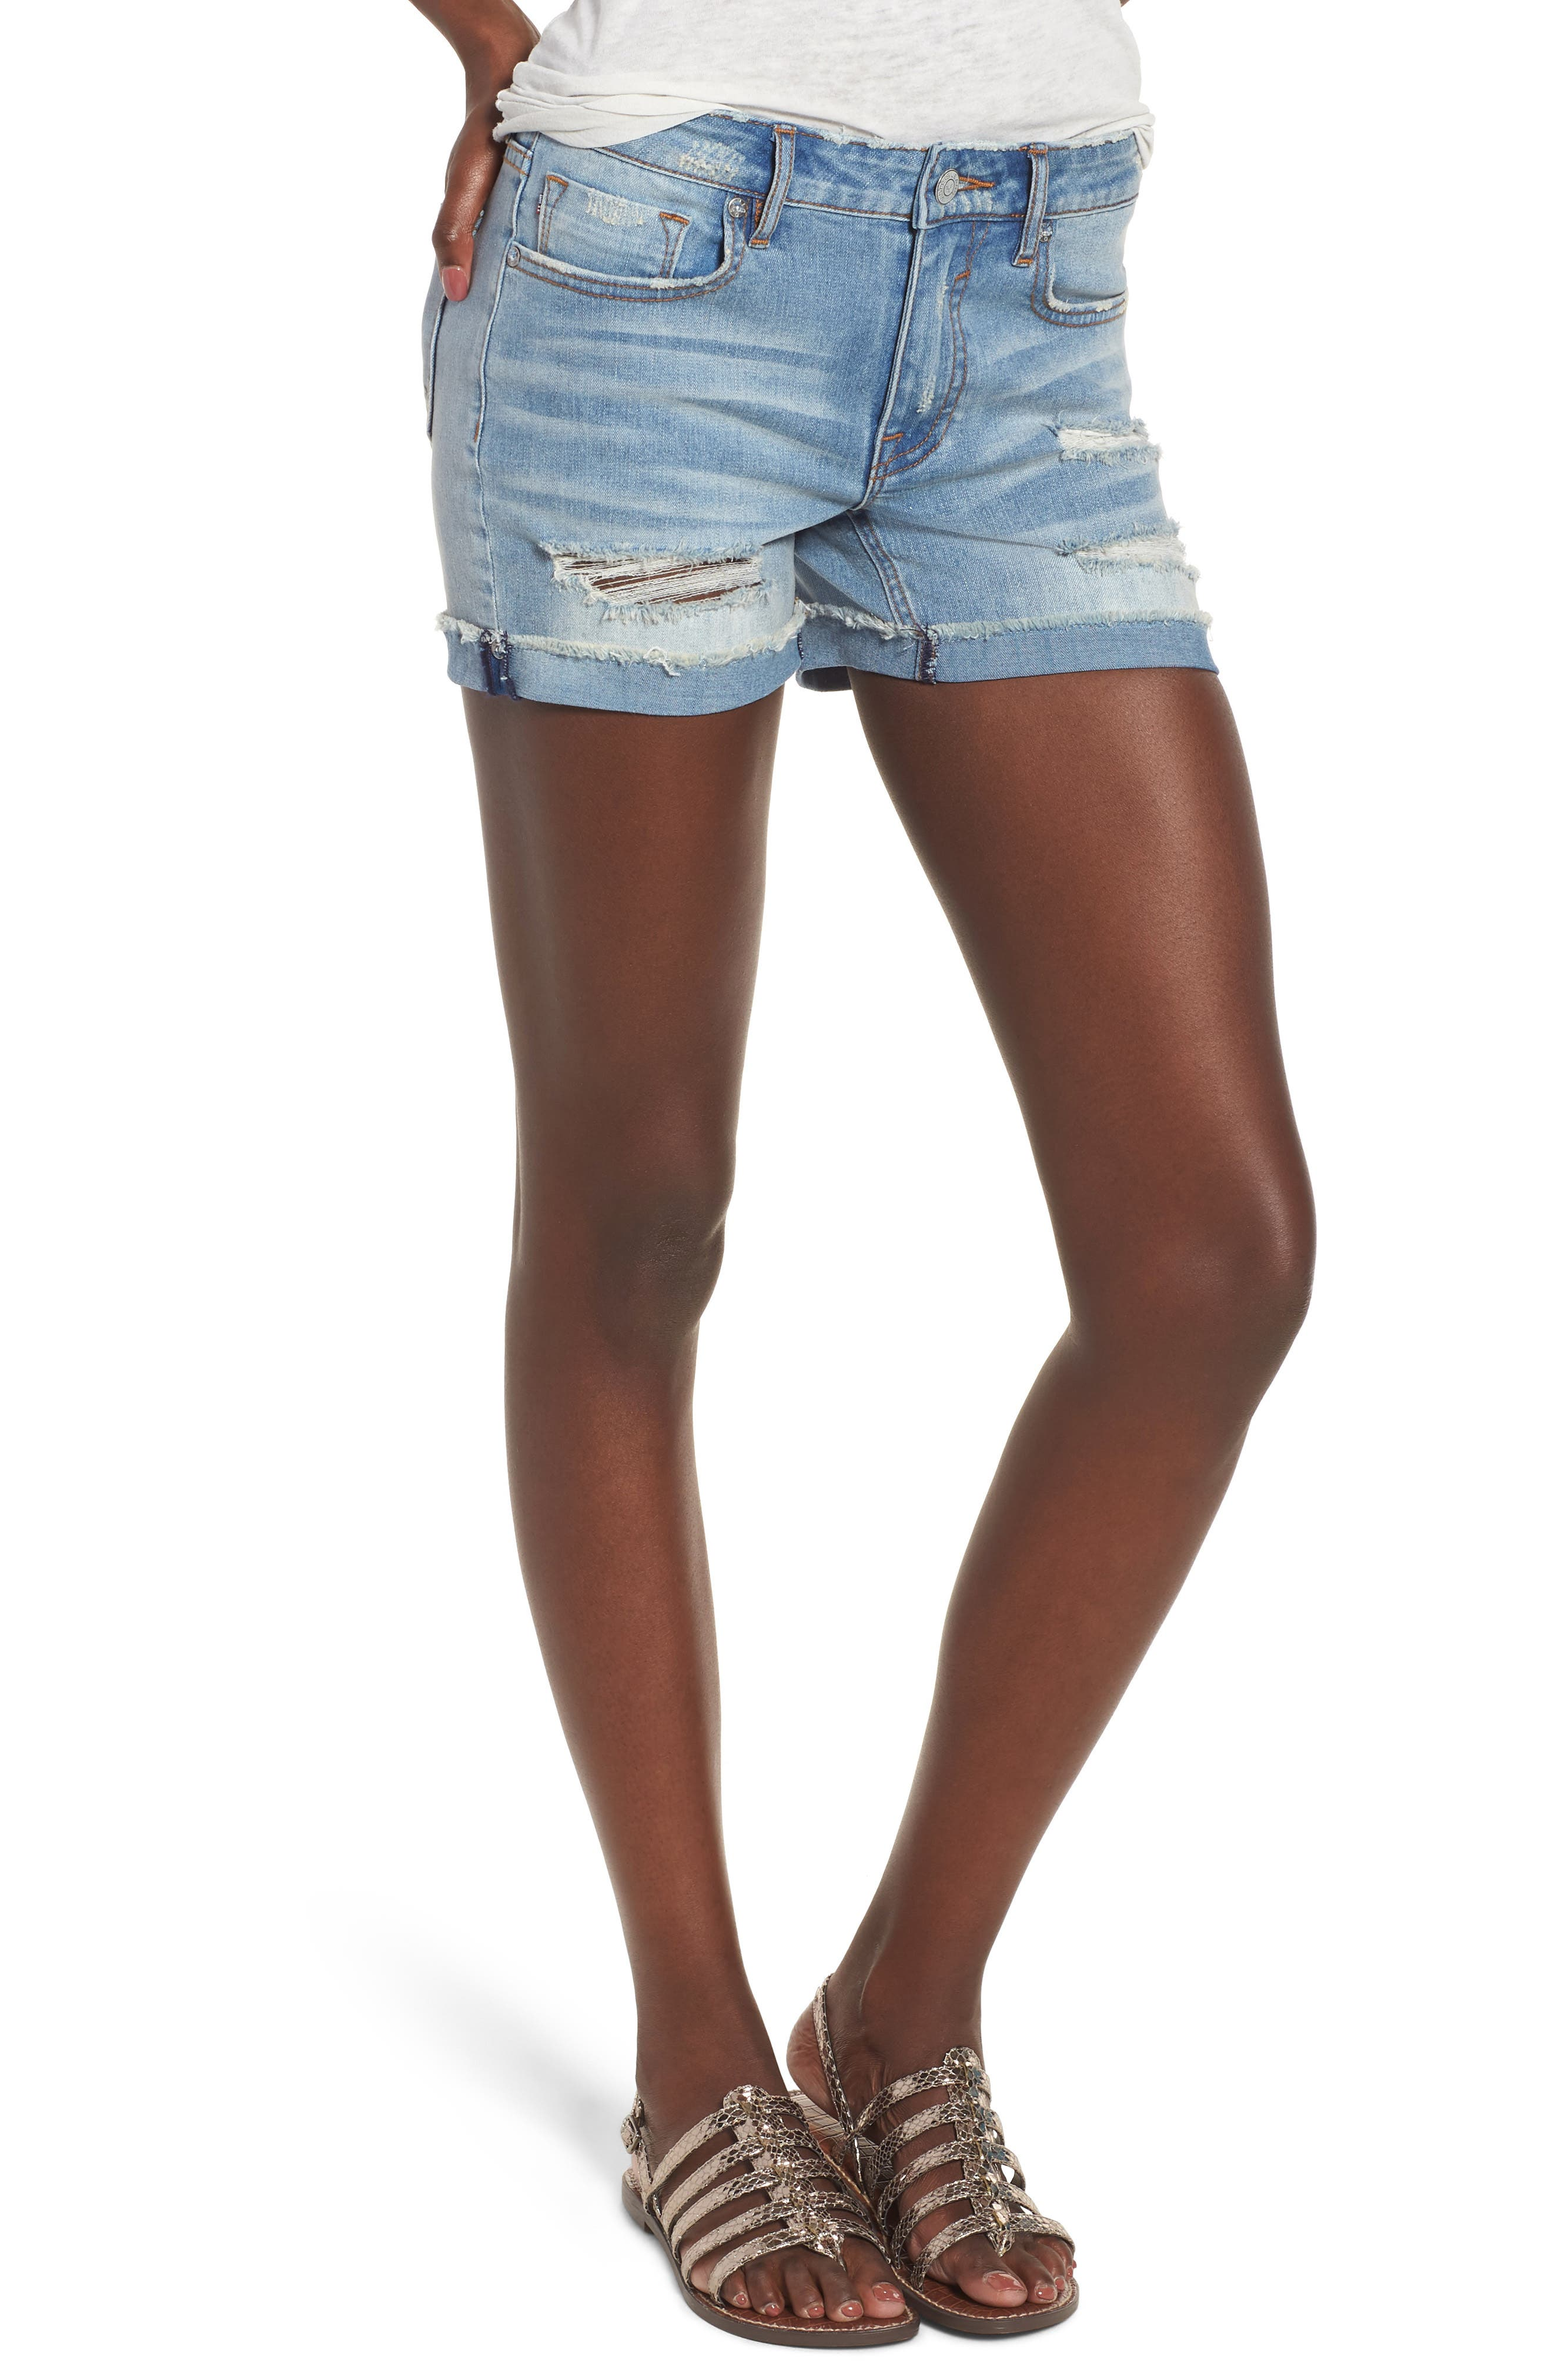 Marley Denim Shorts,                         Main,                         color, 461